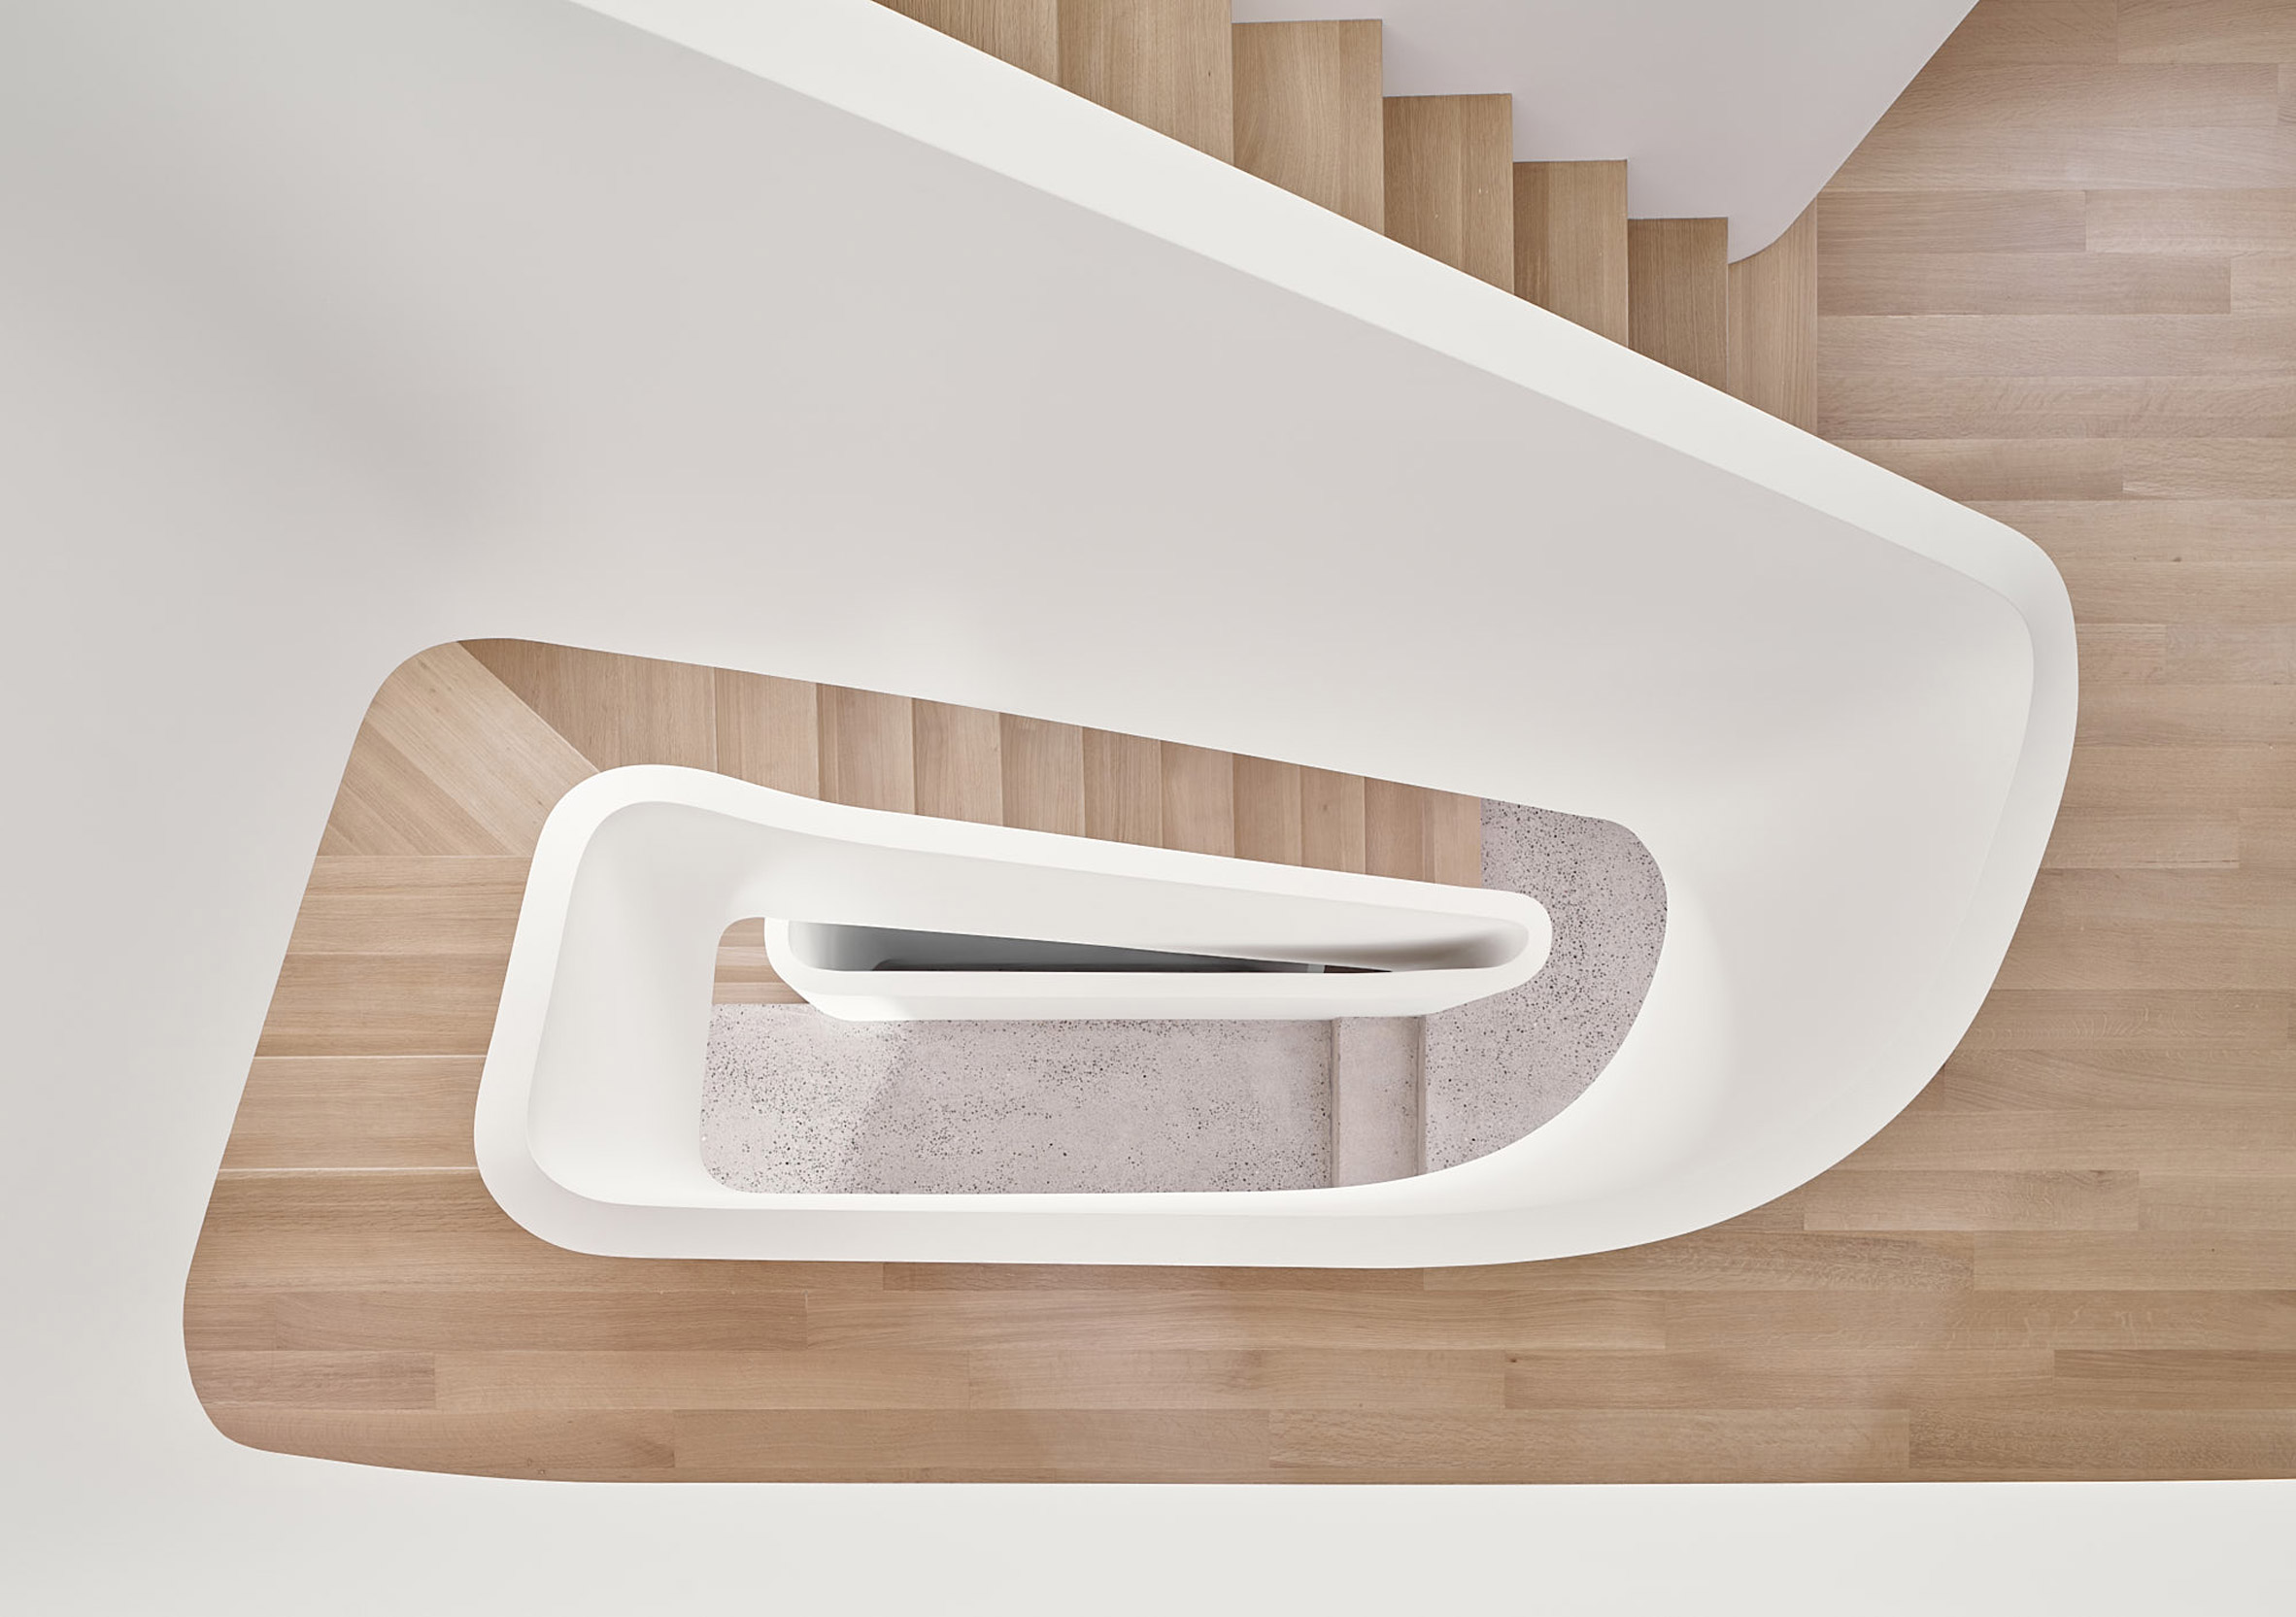 The sculptural staircase designed by Drew Mandel Architects